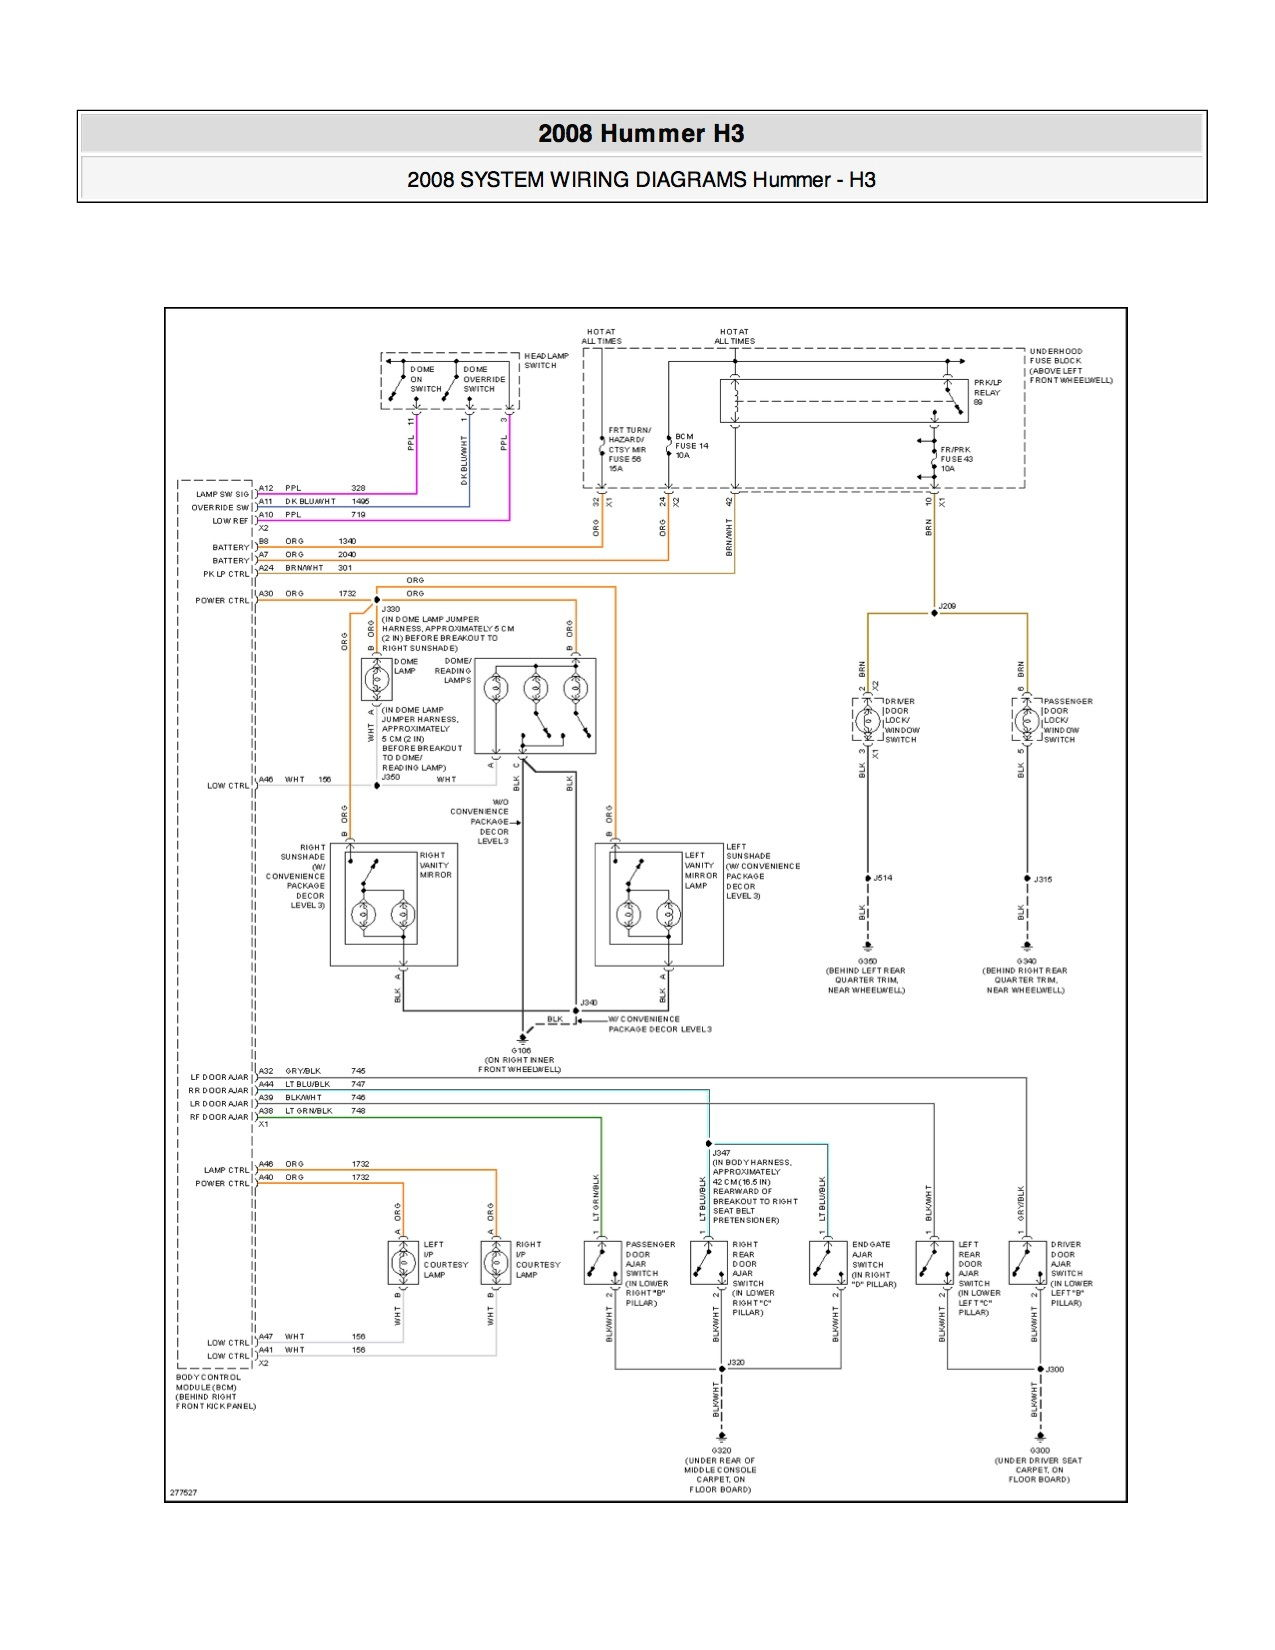 Fuse Location Hummer Forums Enthusiast Forum For Owners 2008 H3 Box If I Were Looking A Parasitic Draw Would Be Pulling Fuses One By Until Found The Circuit And Then Start From There